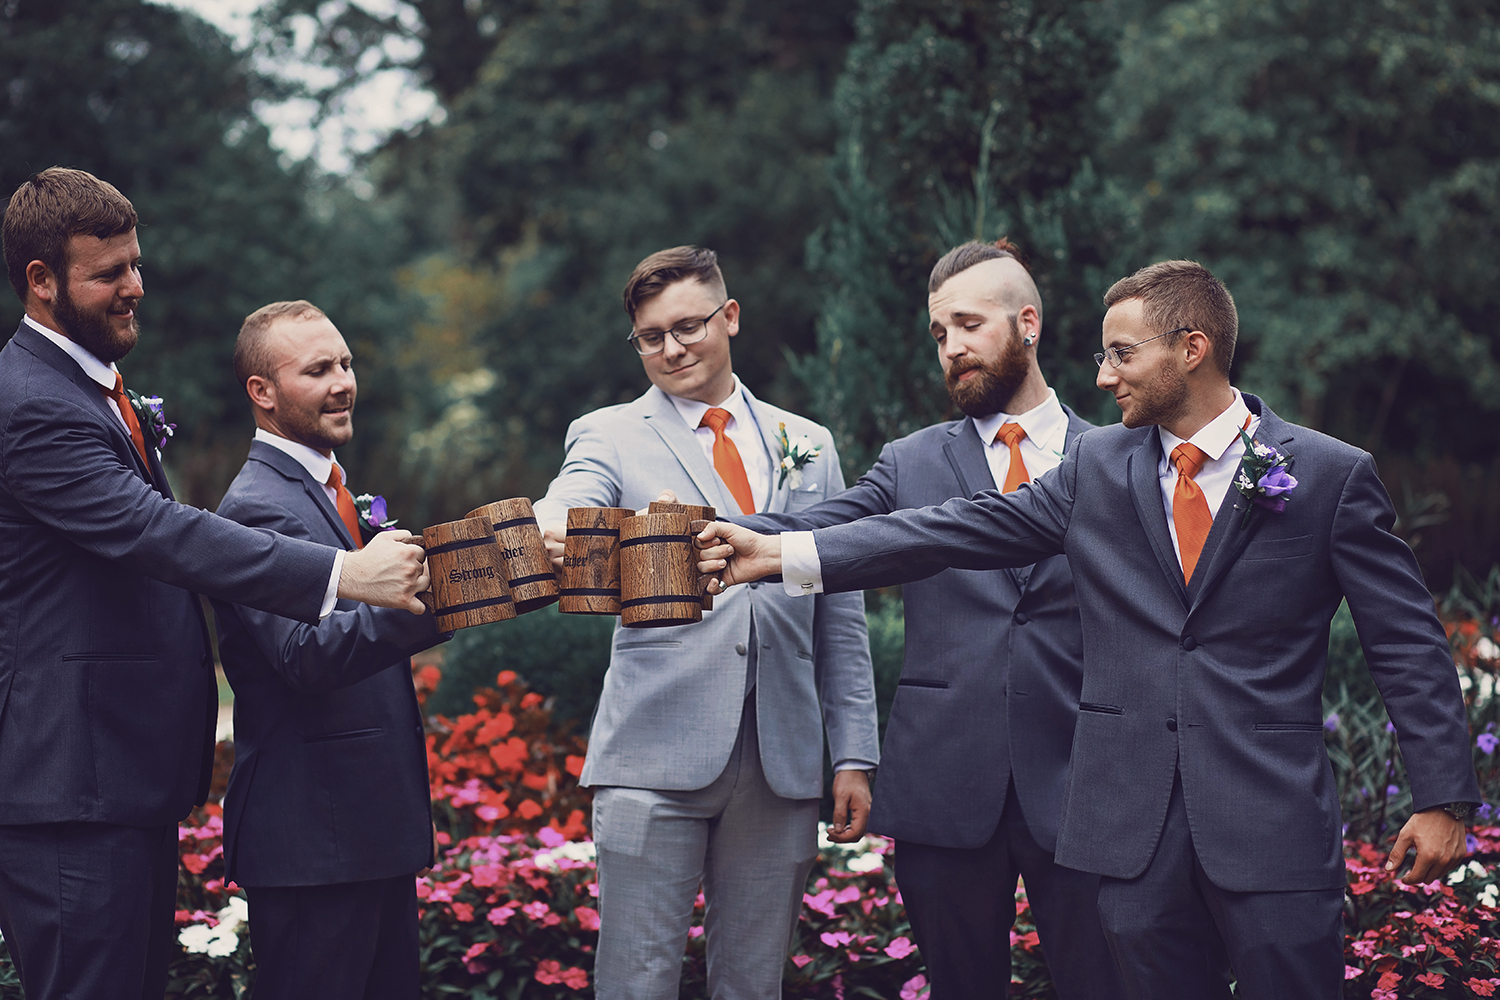 Fun wedding photography of Groom & Groomsmen Cheering